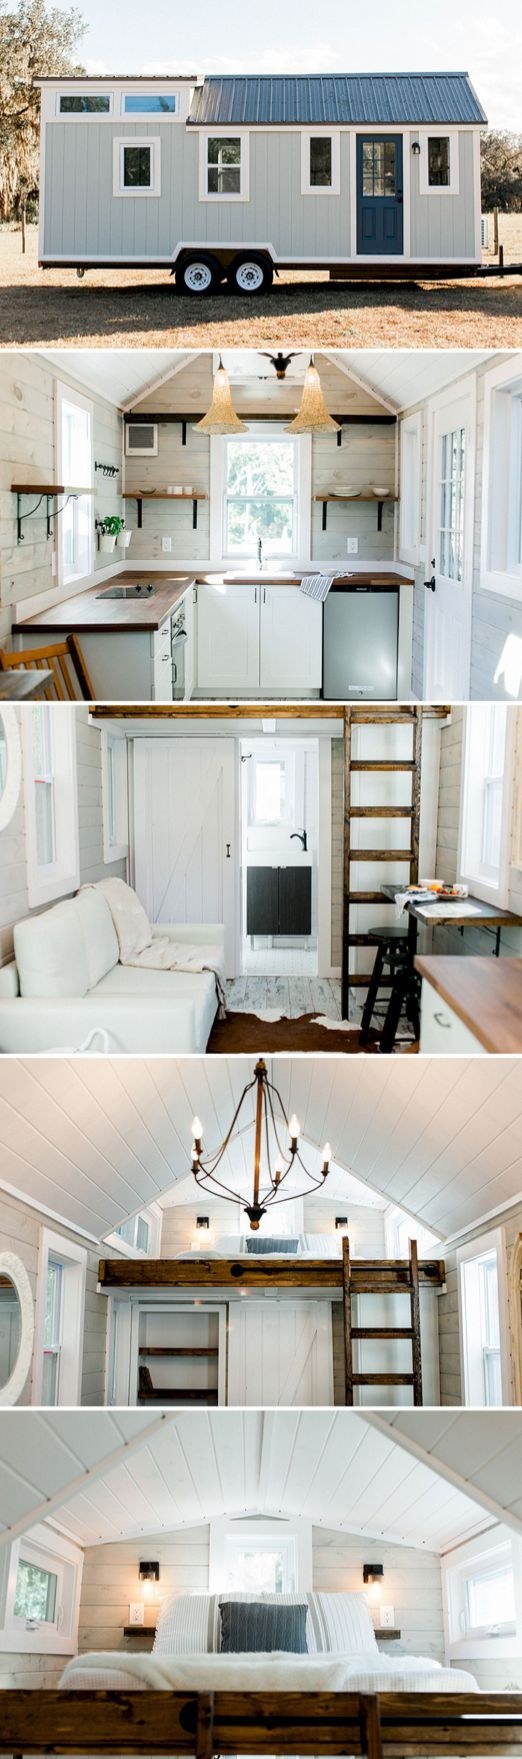 best tiny house images on pinterest